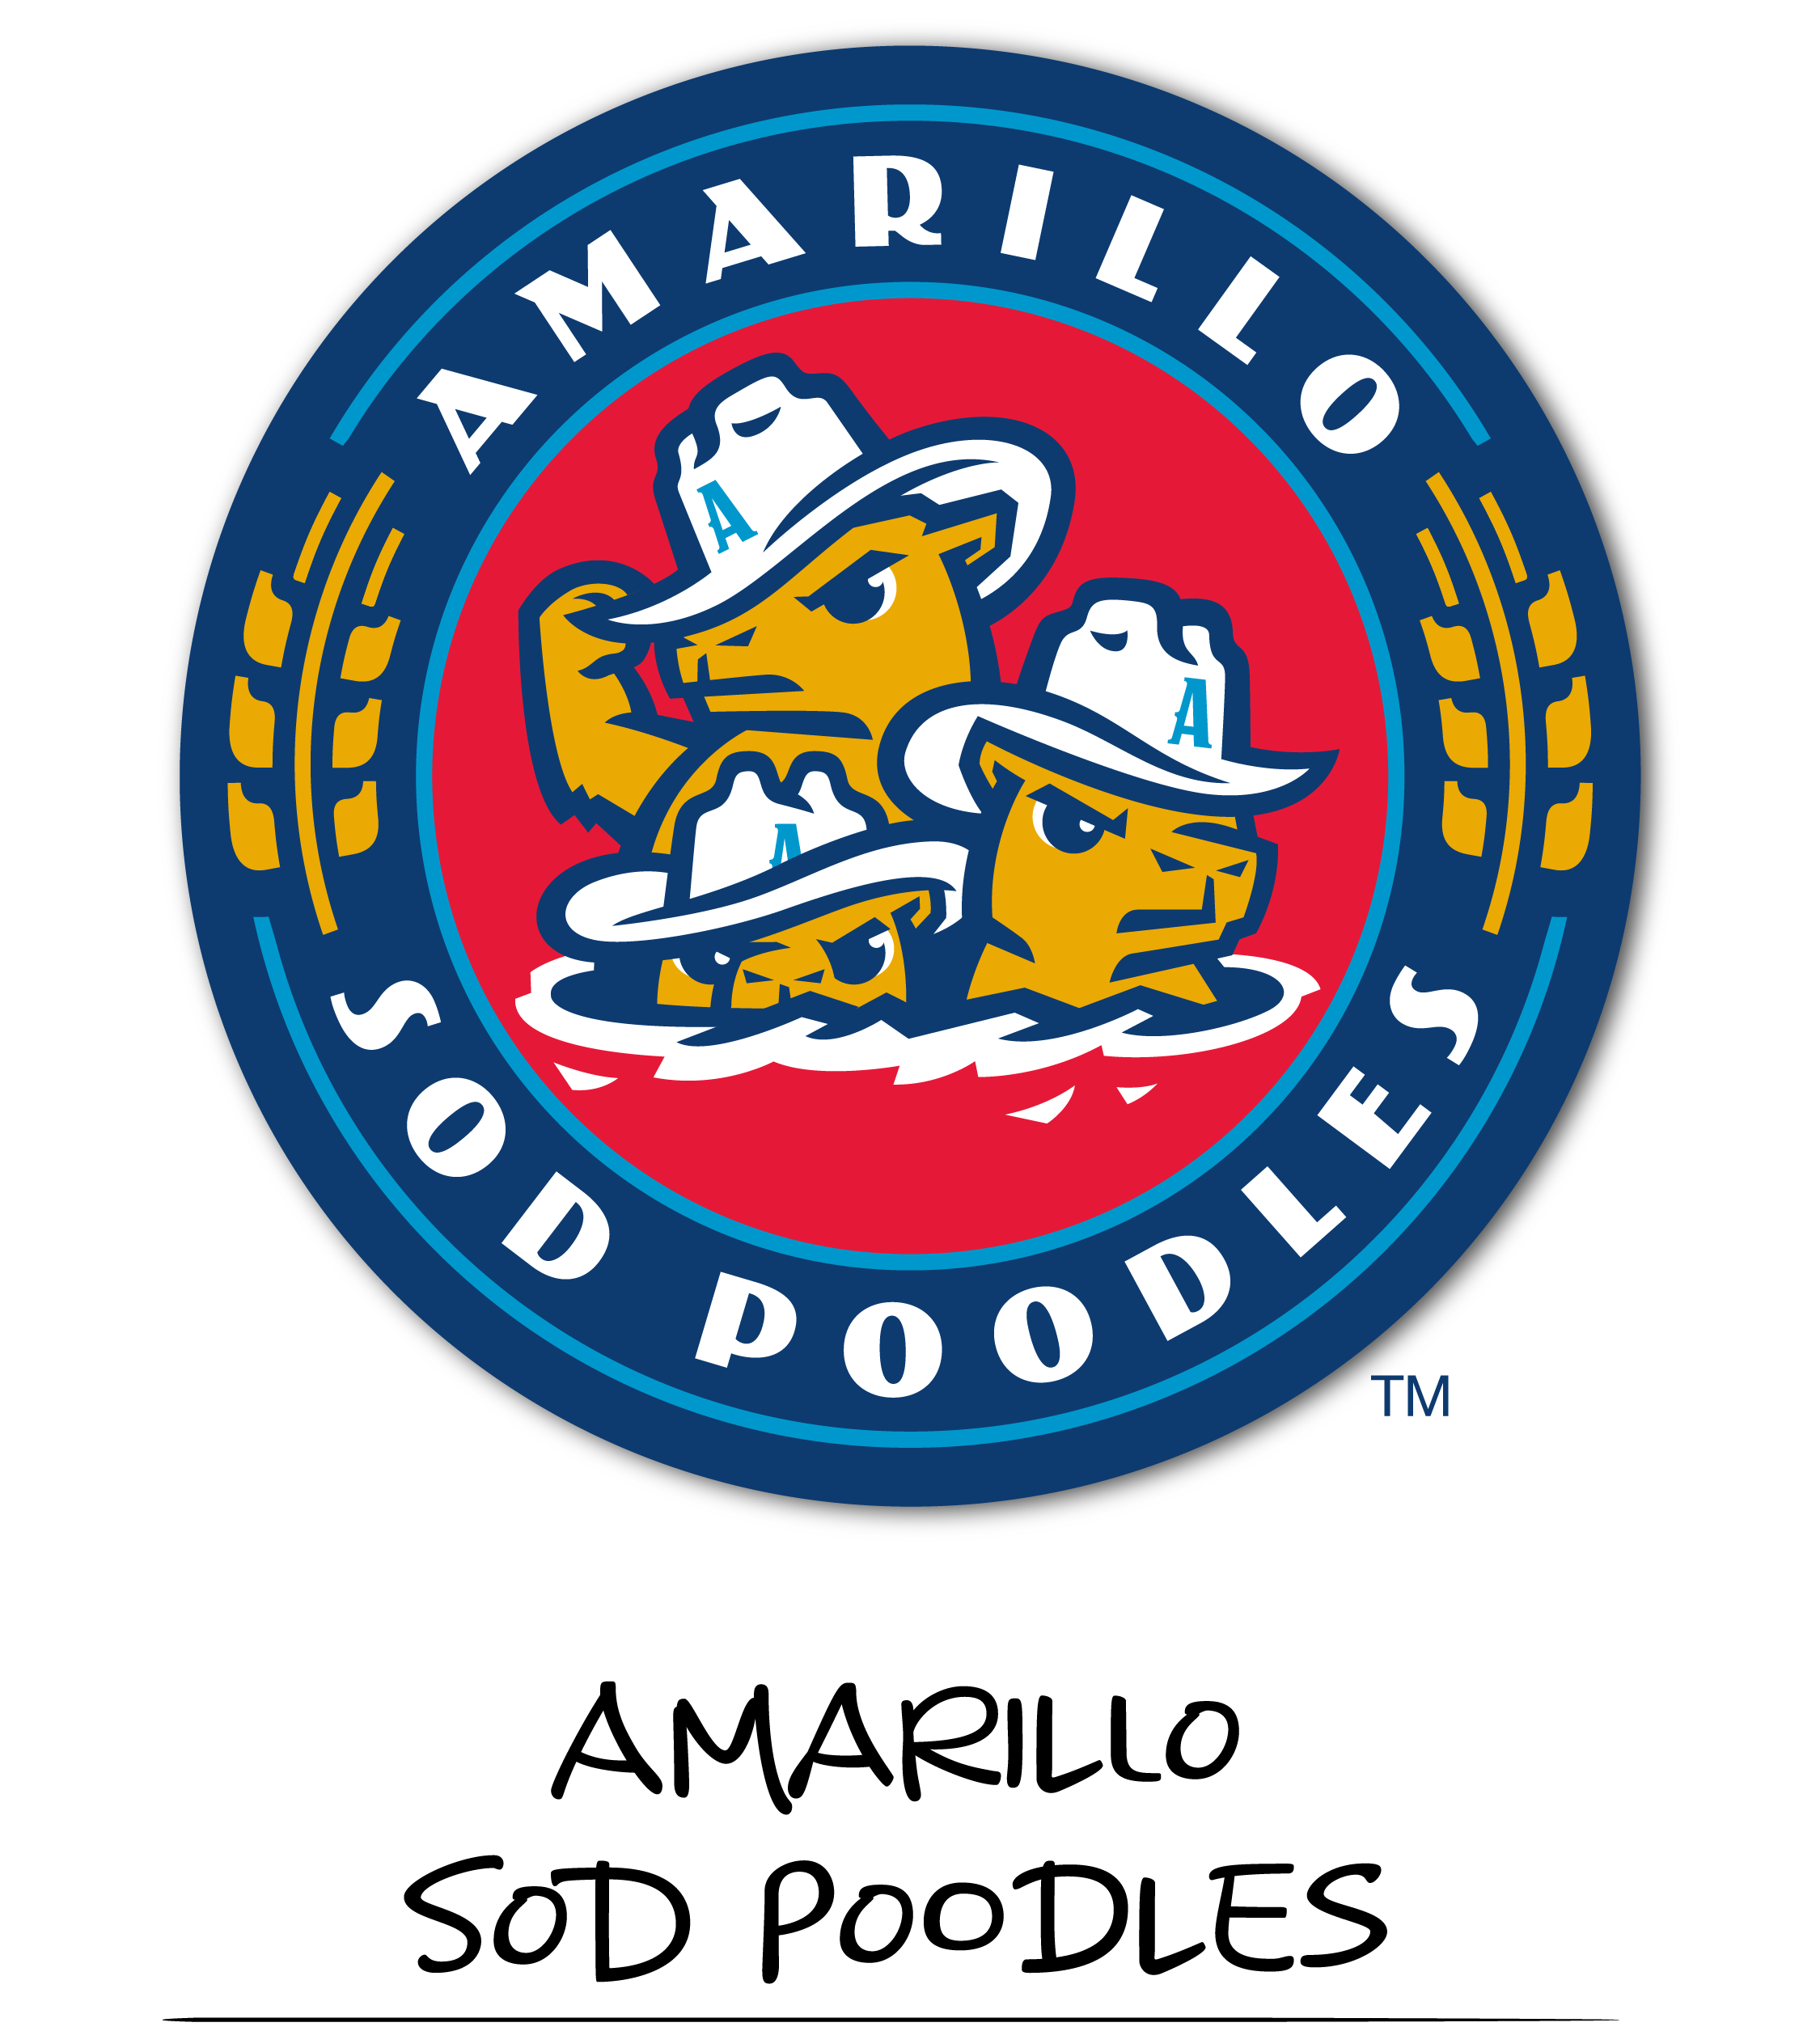 Amarillo-1-IntroResearch_Primary.png